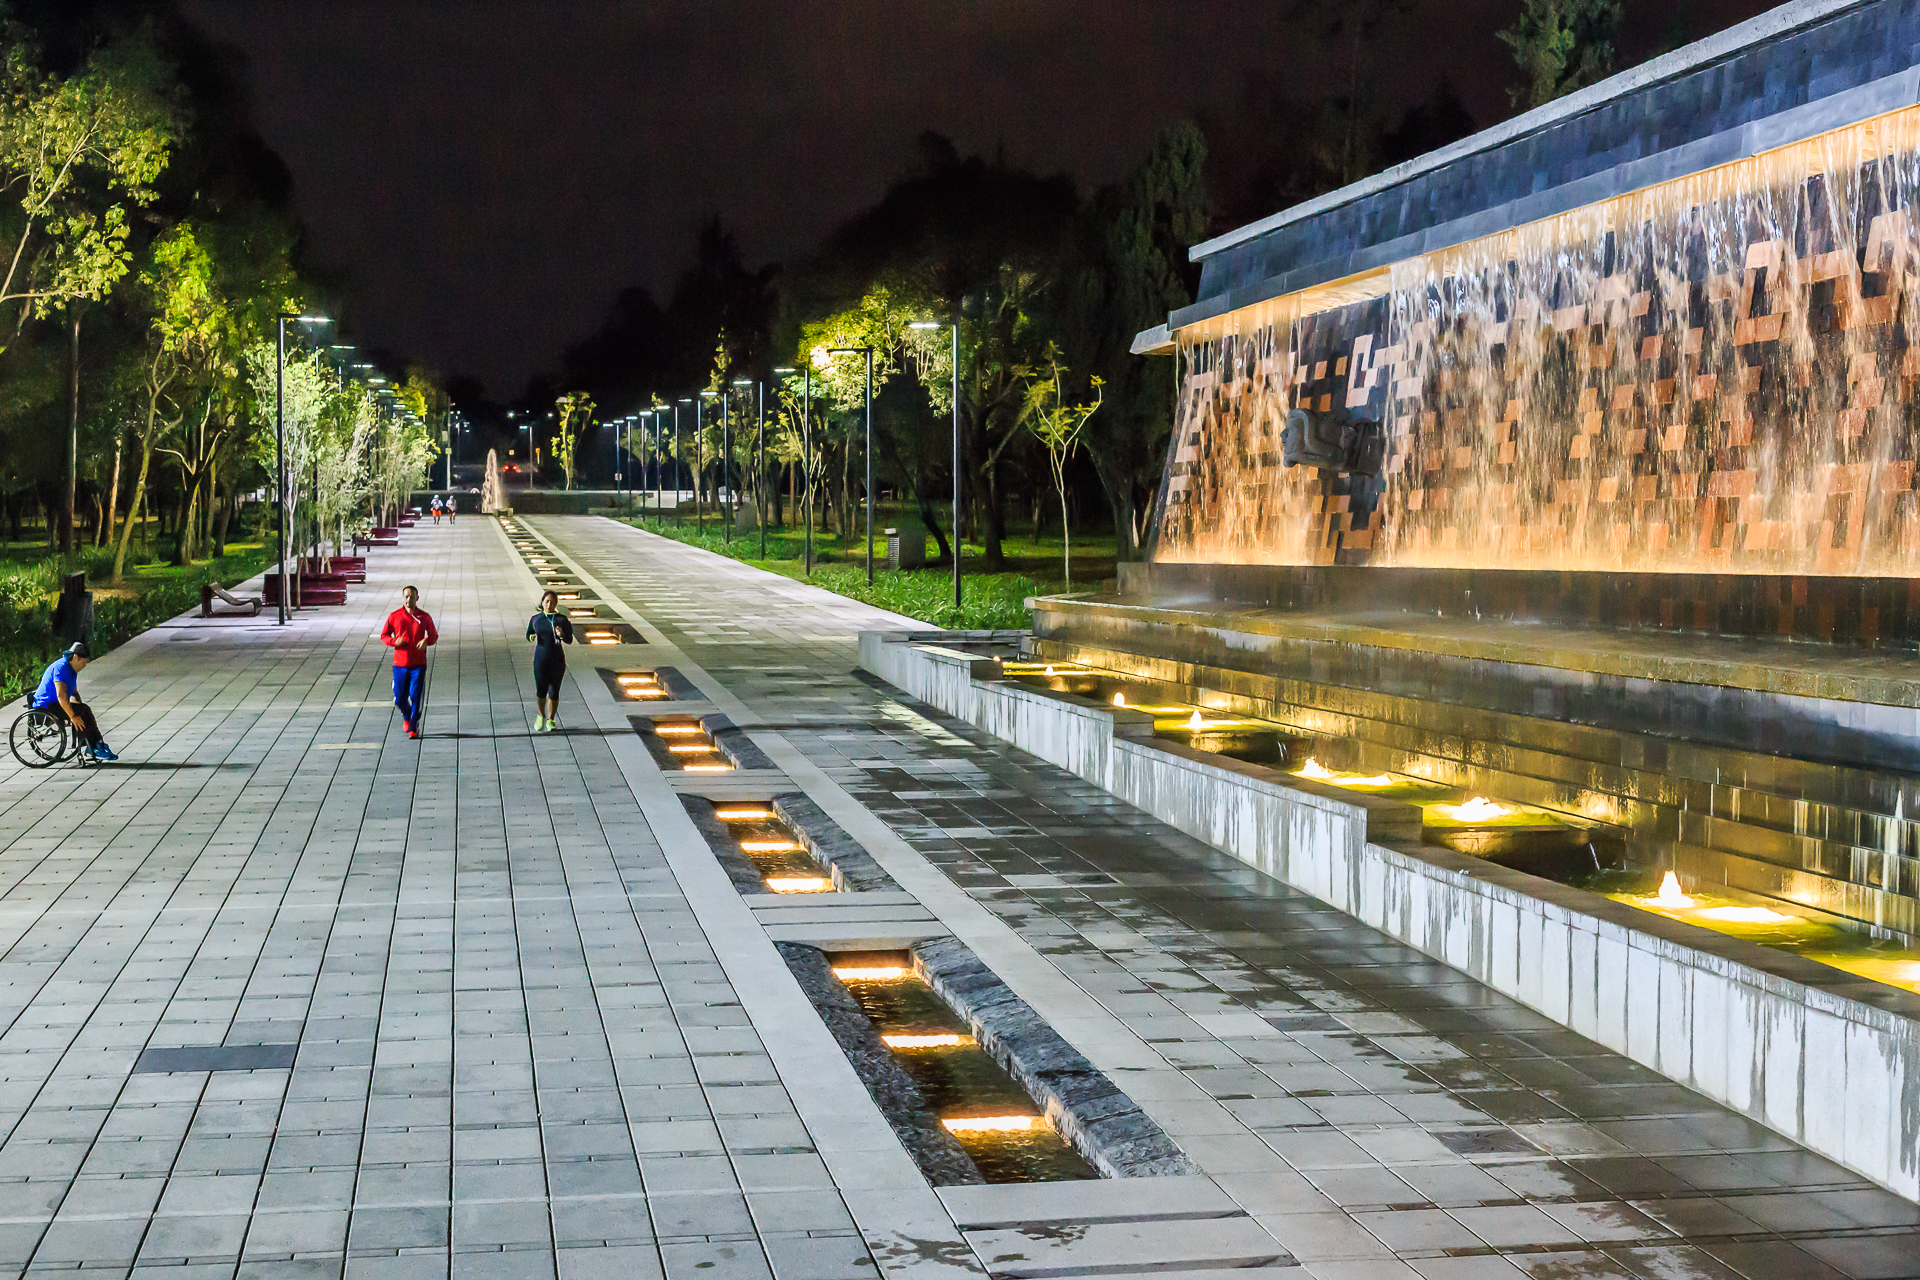 How To Design Spaces For People With >> Wdo Tanya Muller Cities Have To Design Public Spaces For